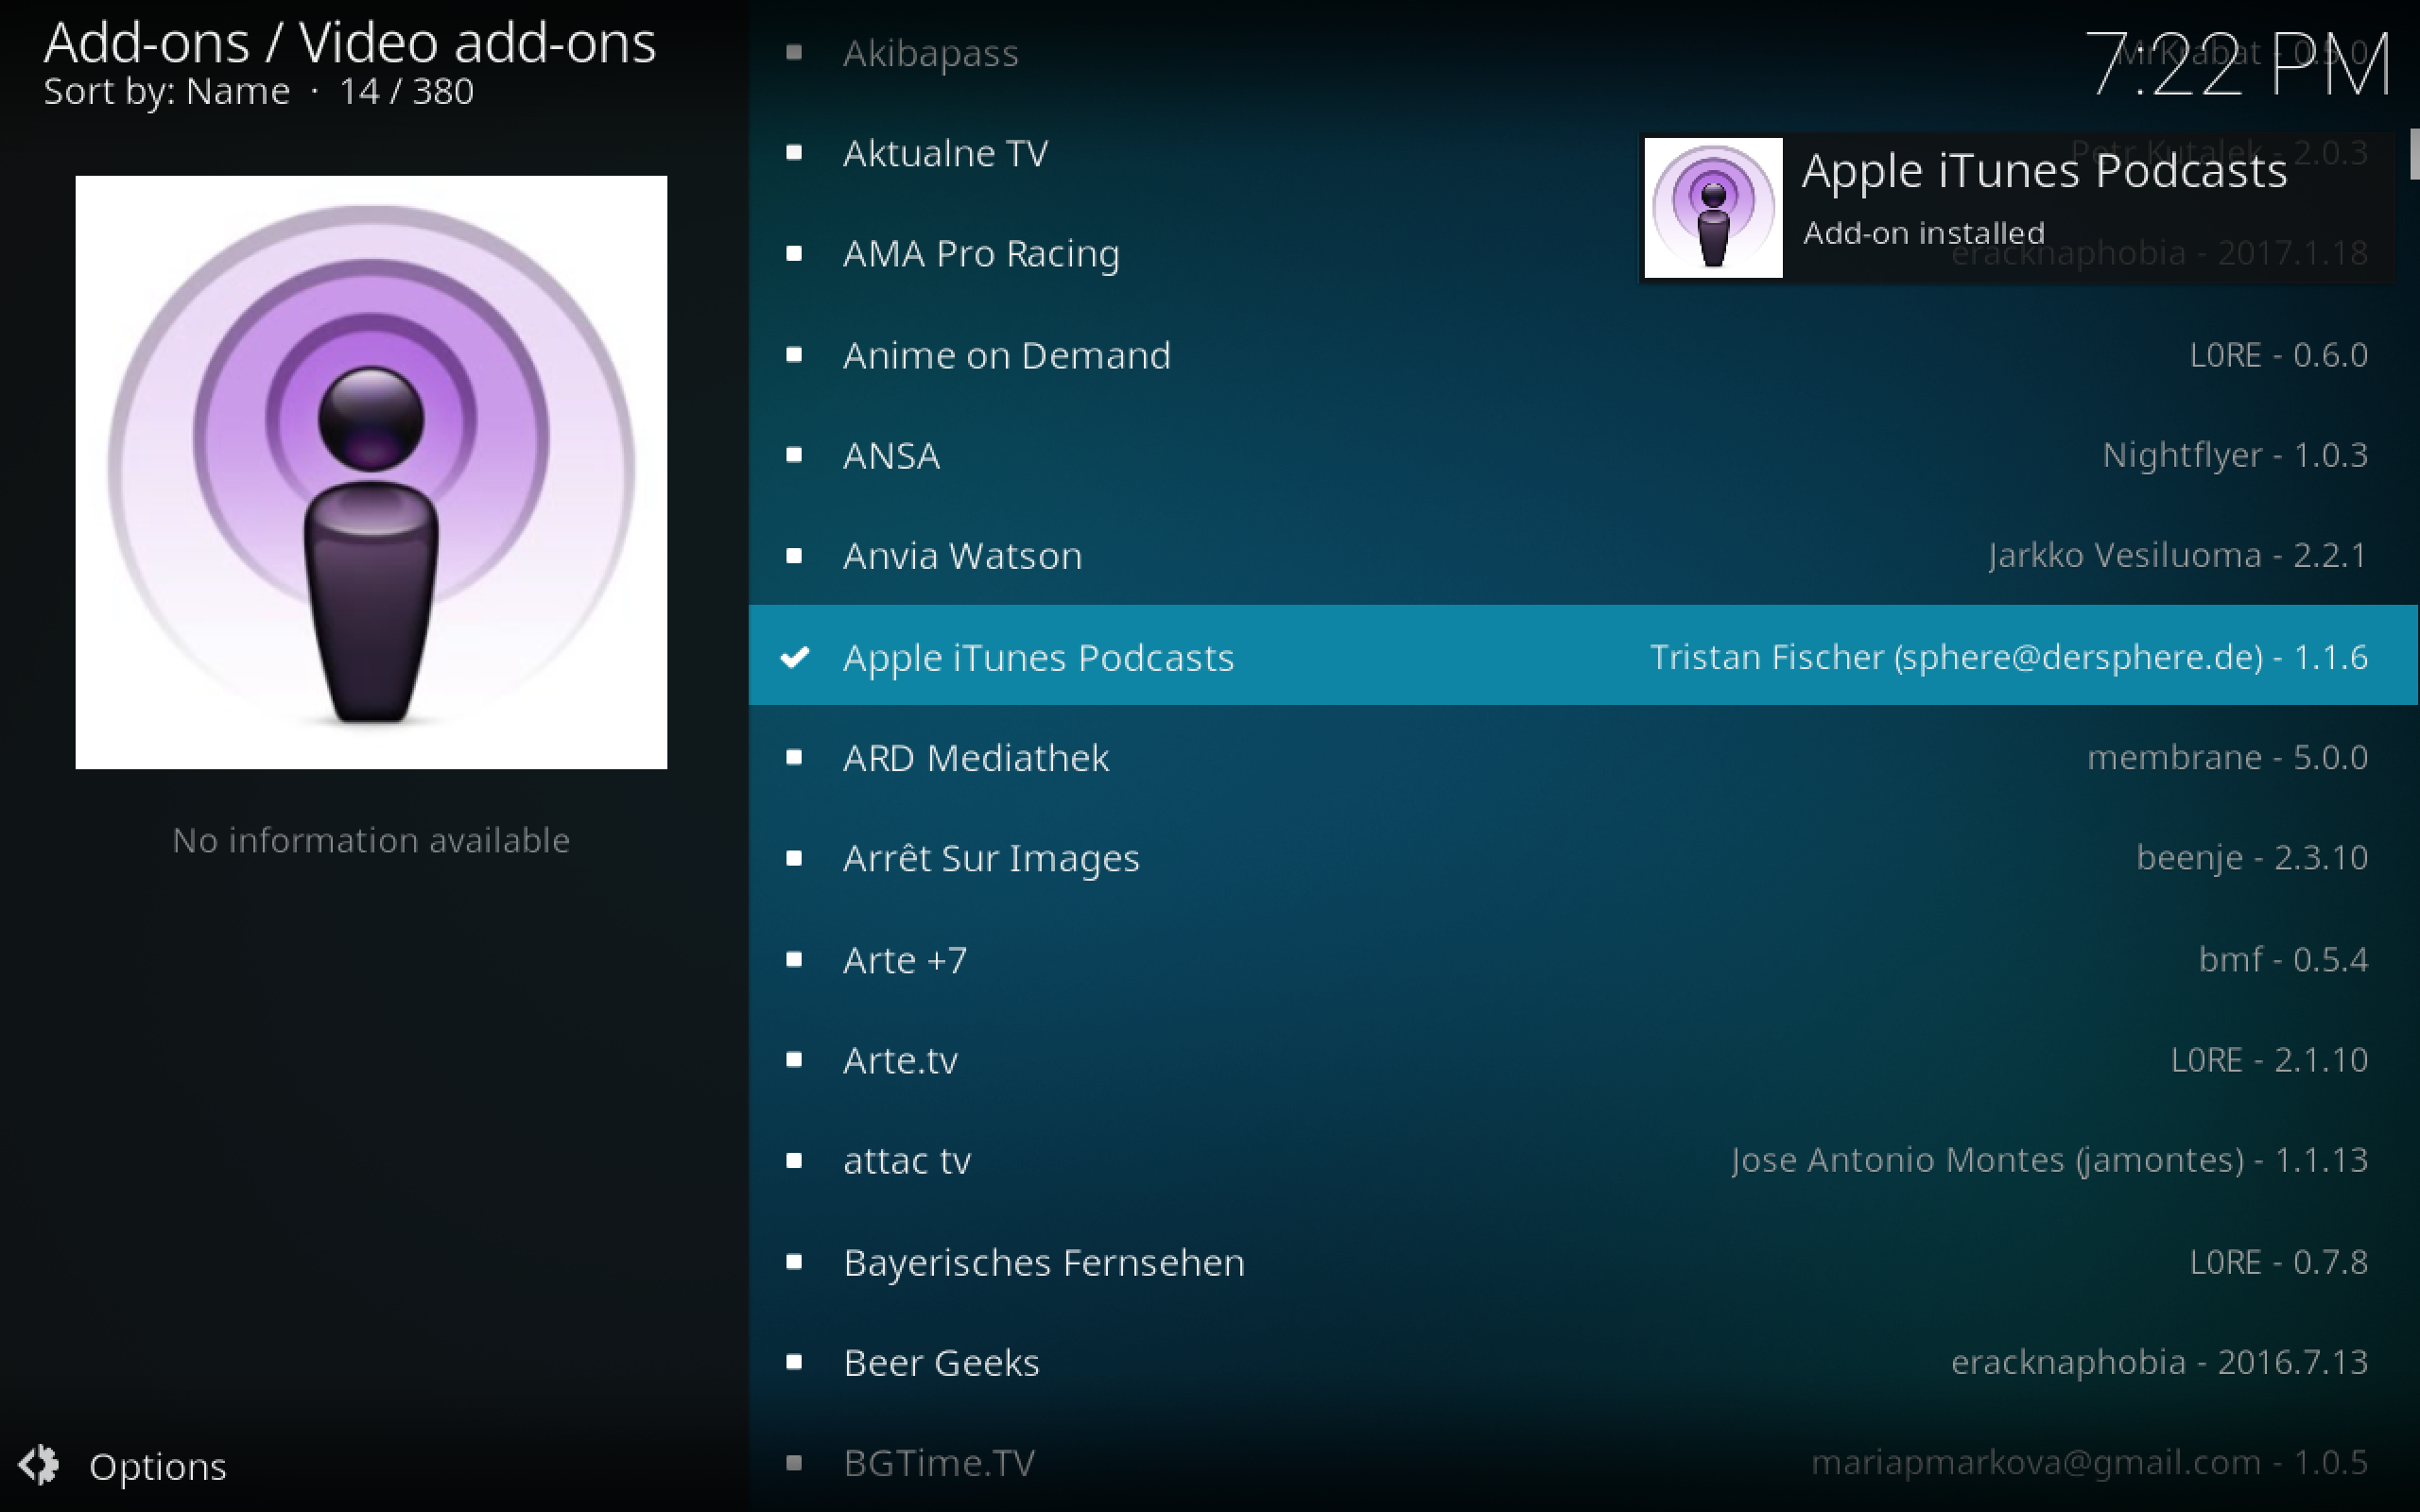 Listen to Podcasts On Kodi with the Apple iTunes Podcasts Add-on Install 2